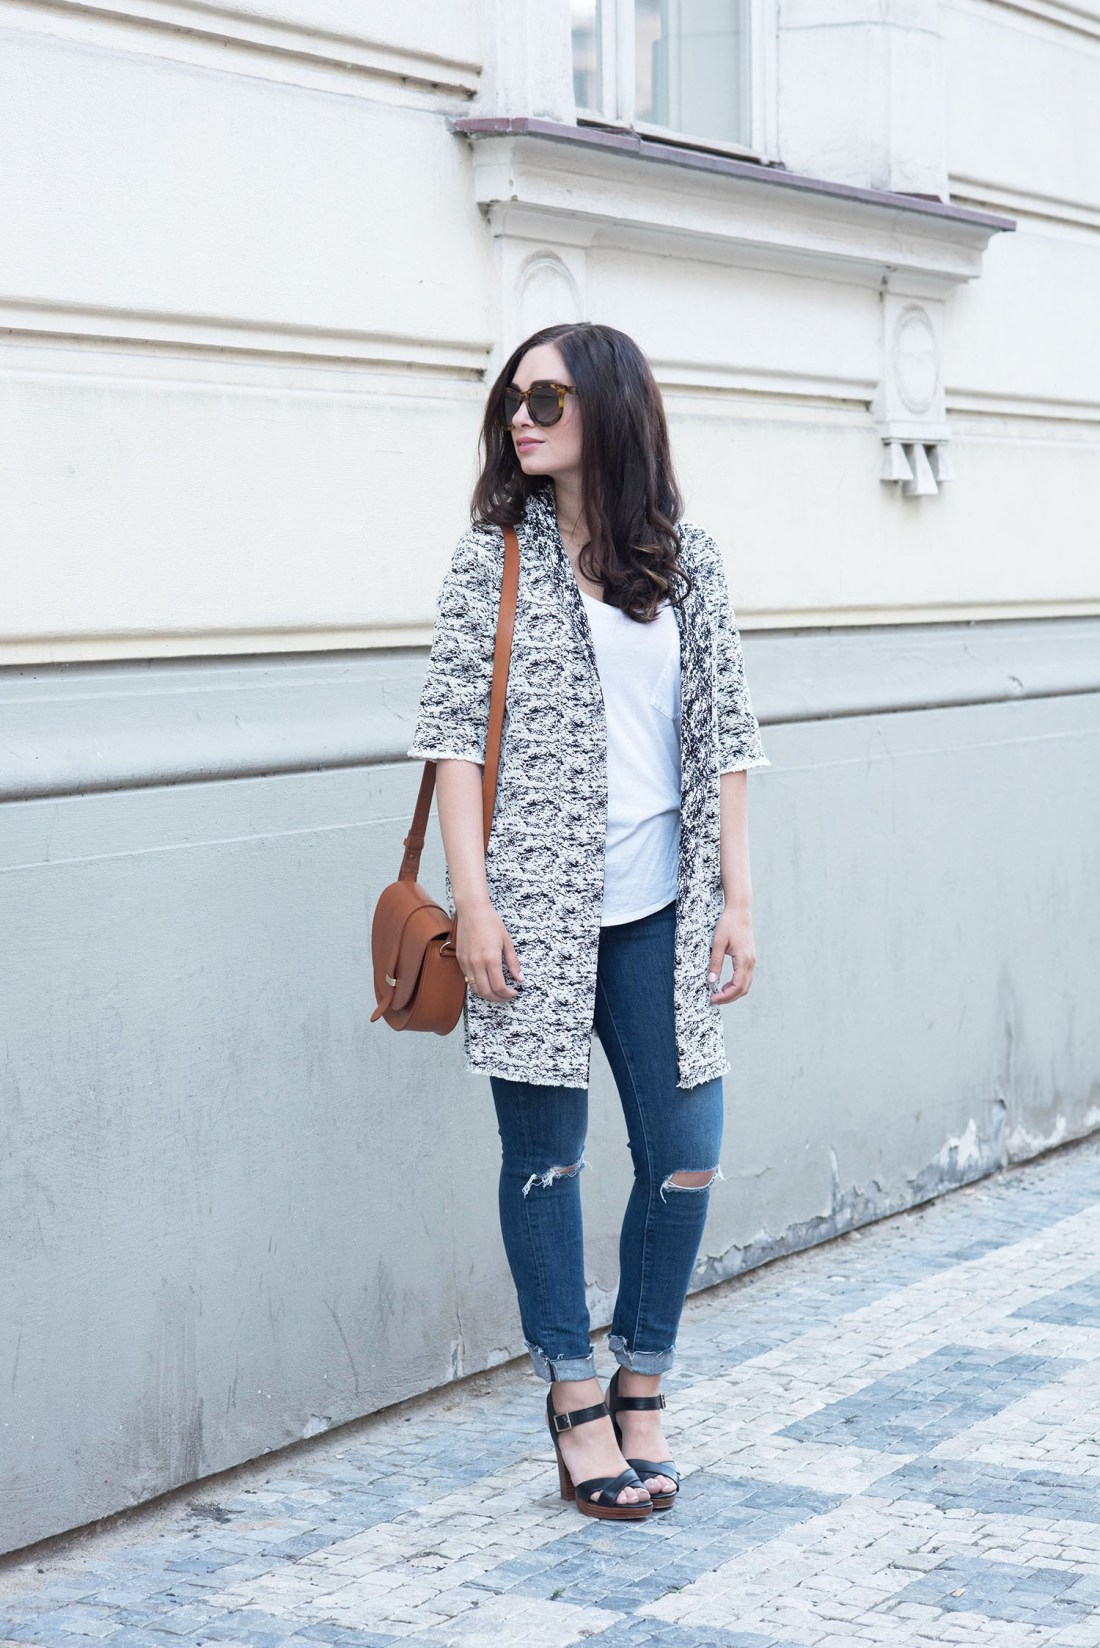 Fashion blogger Cee Fardoe of Coco & Vera wears a Floriane Fosso jacket and Paige jeans in Prague